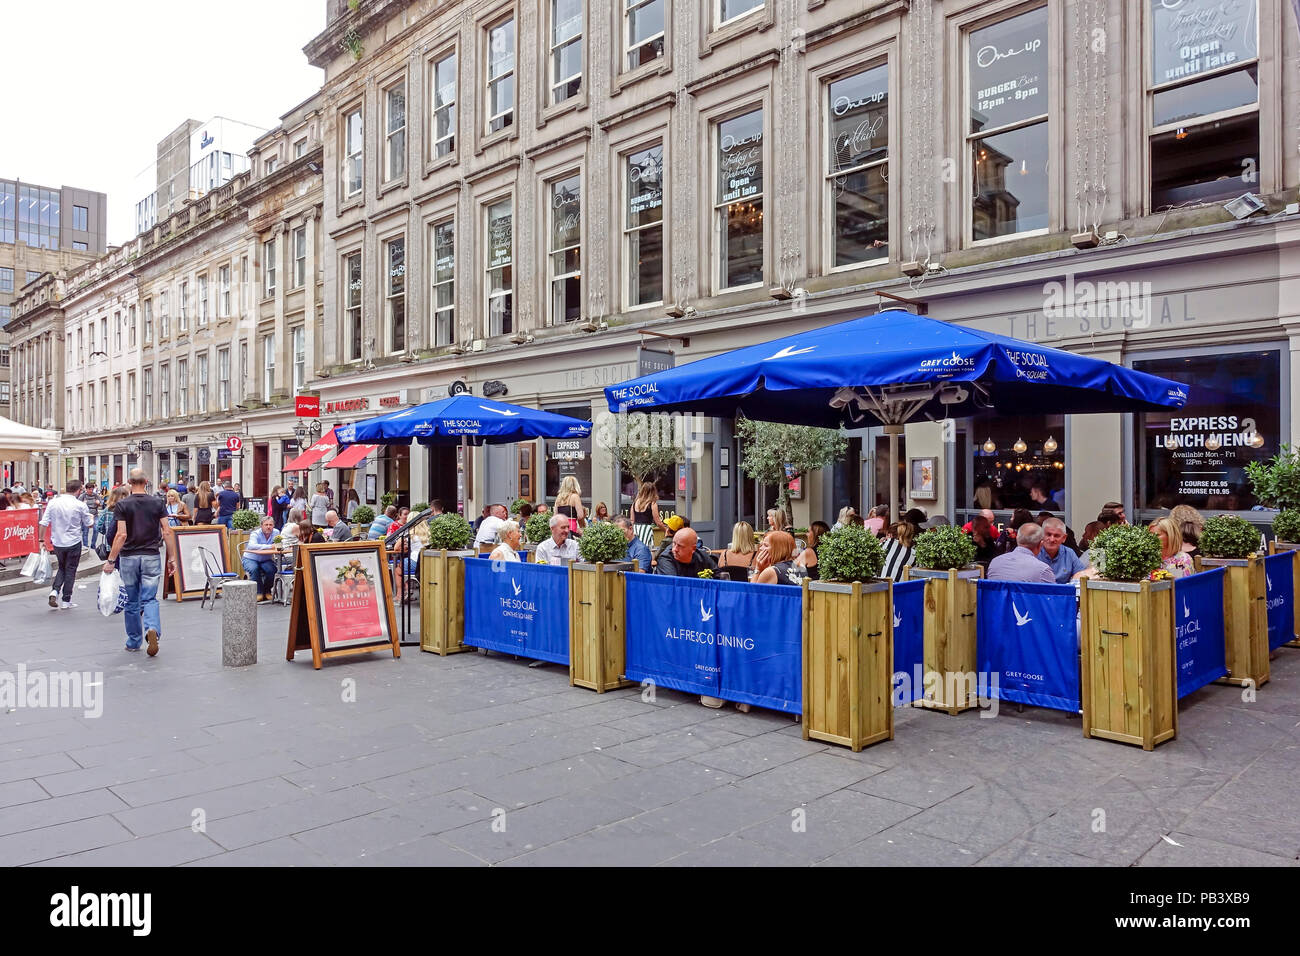 The Social On the Square Al Fresco Dining outside restaurant and cafe in Royal Exchange Square Glasgow City Scotland UK - Stock Image